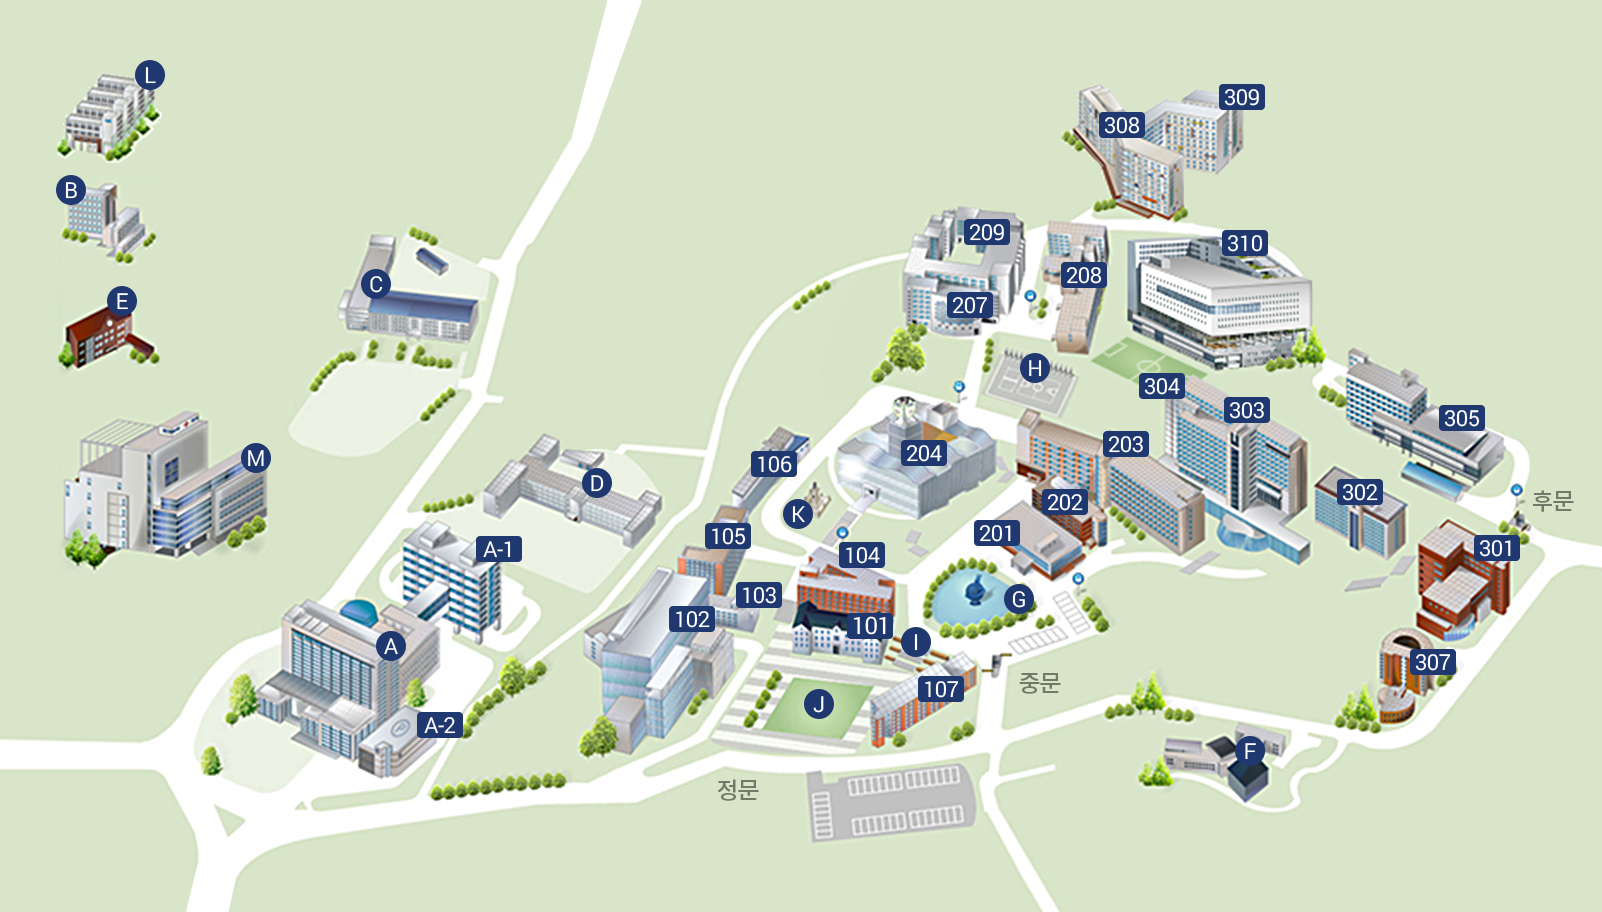 pfeiffer university campus map About Cau Maps And Directions Campus Map Chung Ang University pfeiffer university campus map